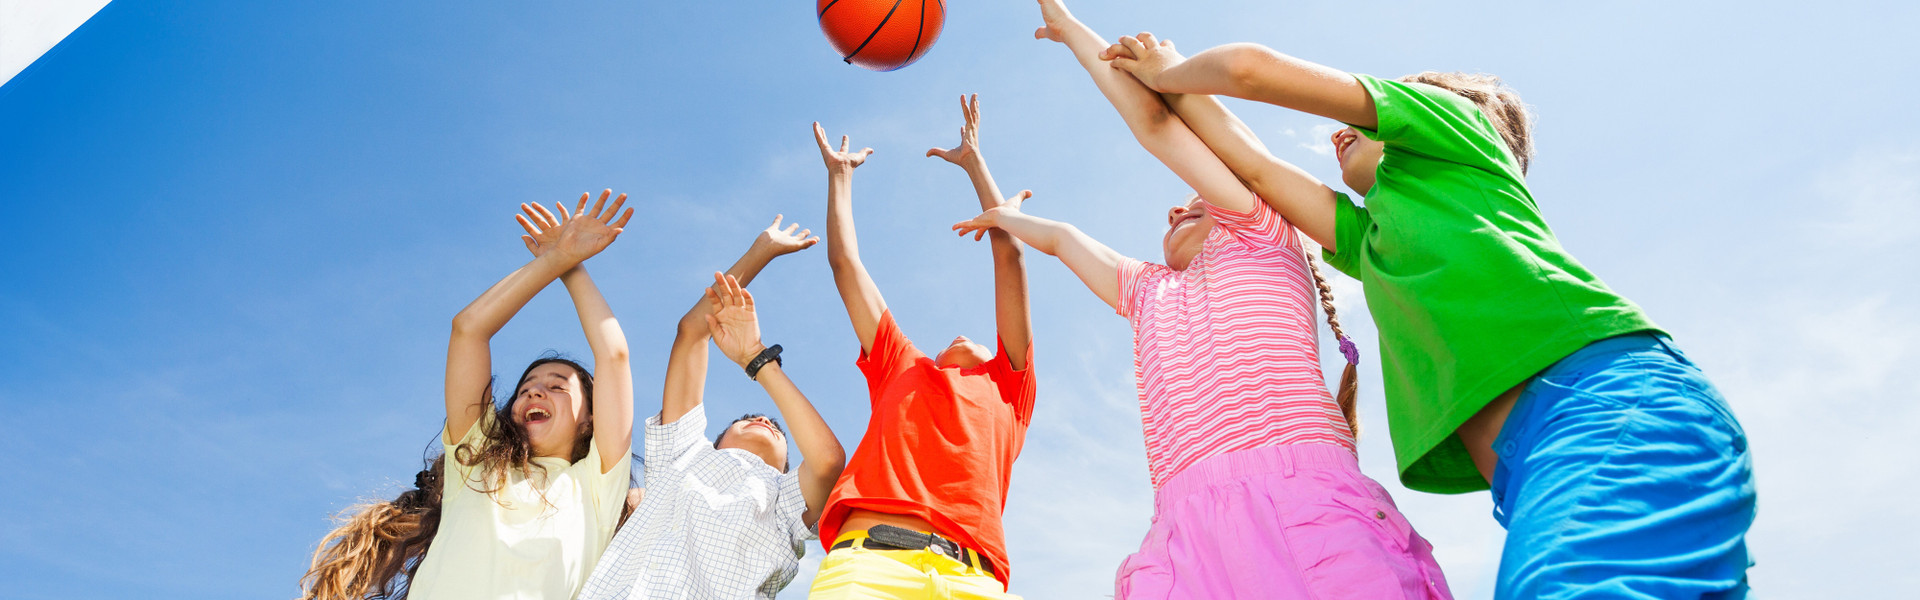 Kids having fun at our basketball courts in Orlando Florida | Basketball & Tennis Courts | Westgate Lakes Resort & Spa